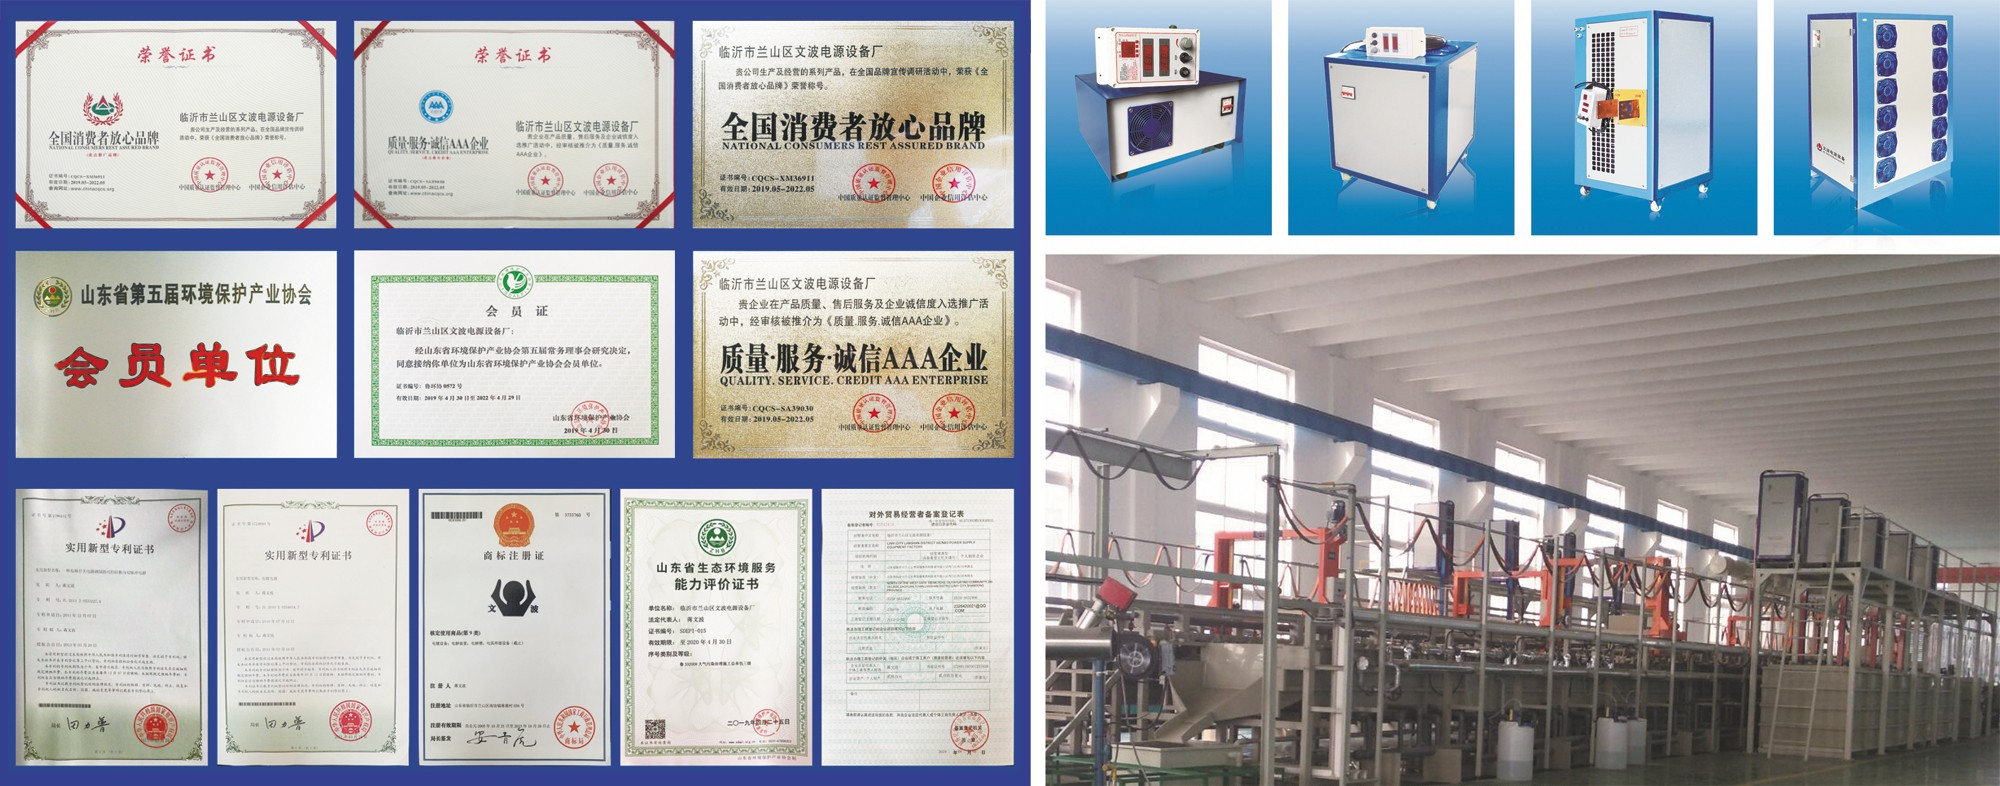 Linyi City Lanshan District Wenbo Power Supply Equipment Factory